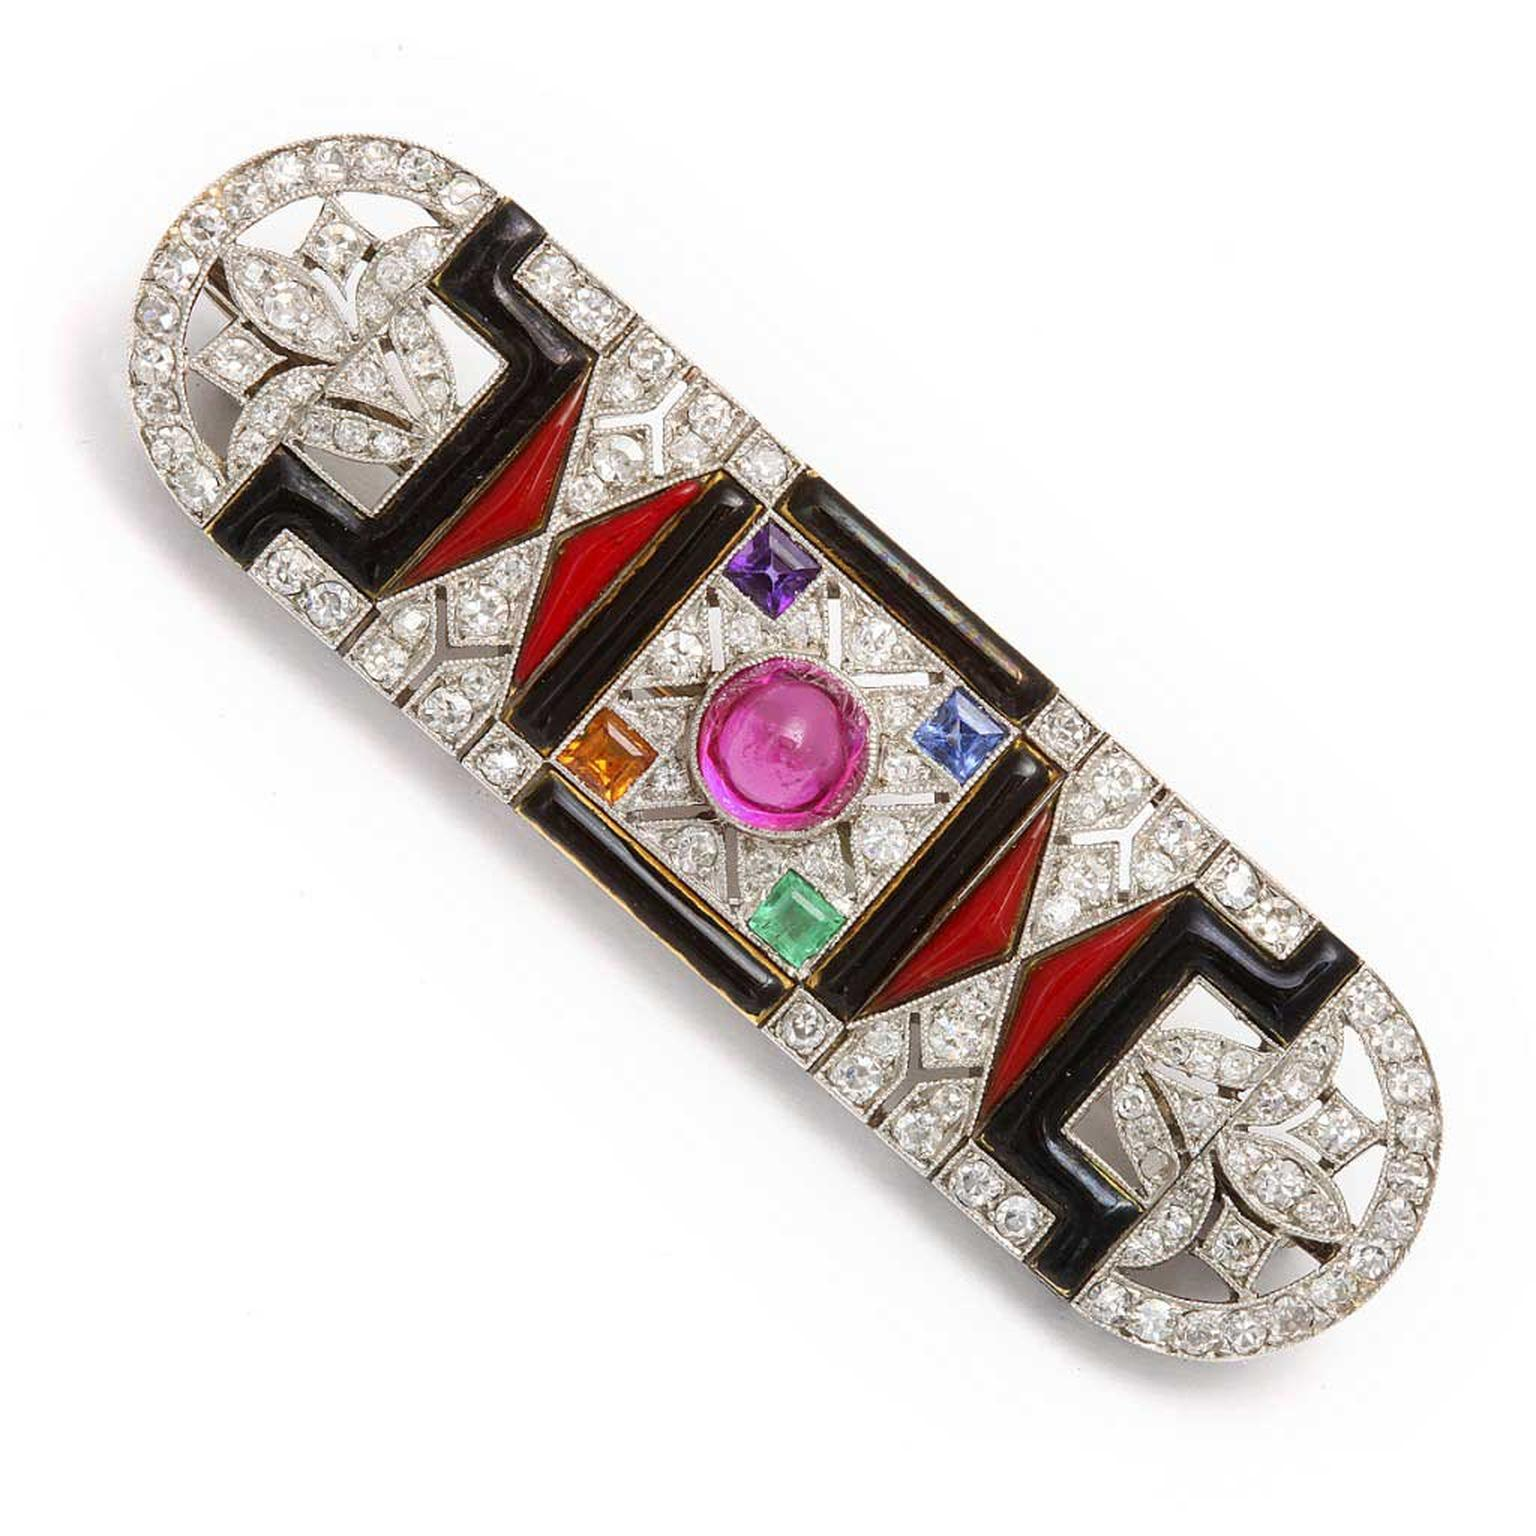 A La Vieille Russie diamond and black onyx brooch